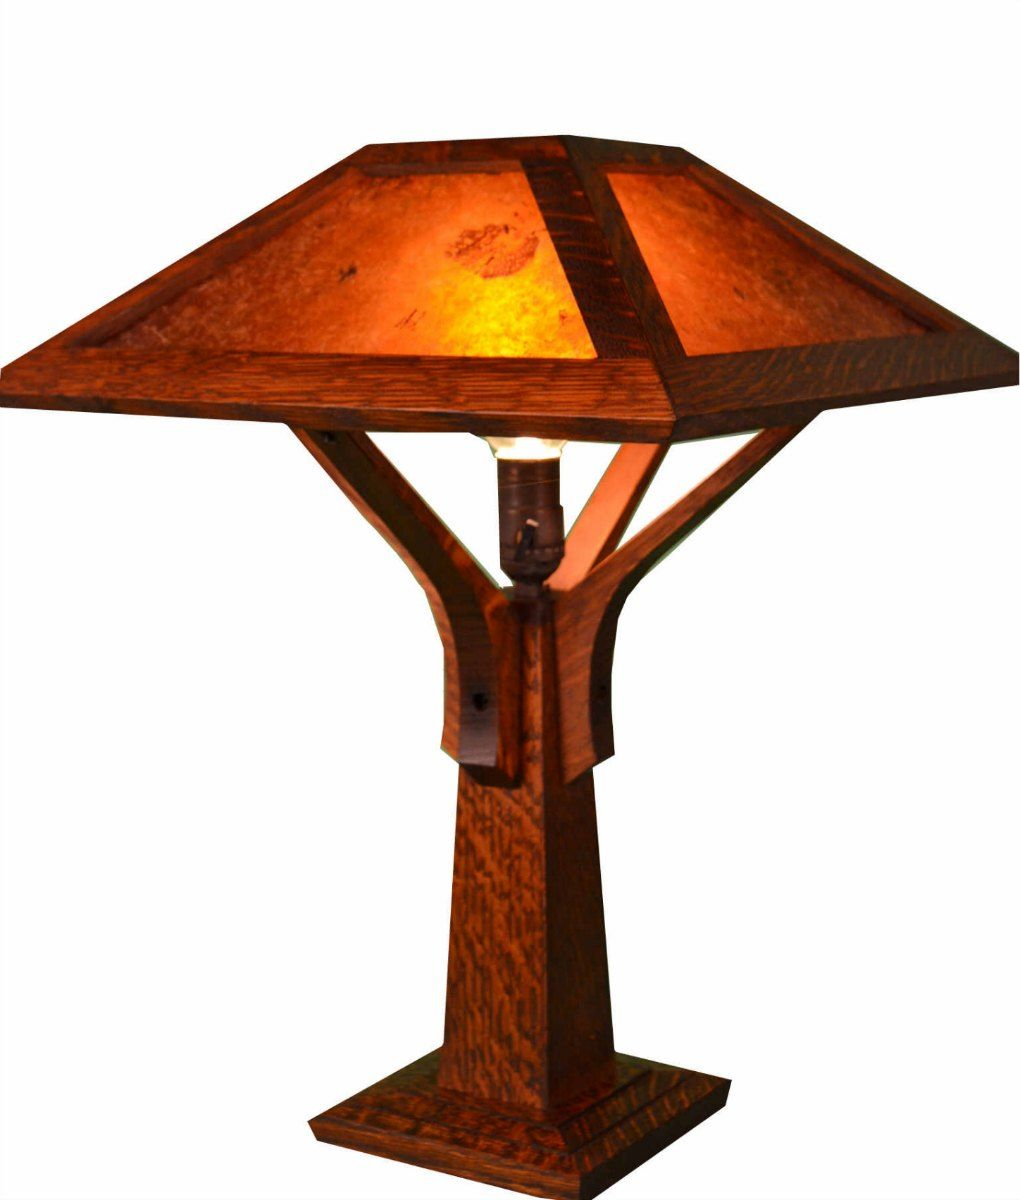 Mission Craftsman Table Lamp Little Brown Wall decor